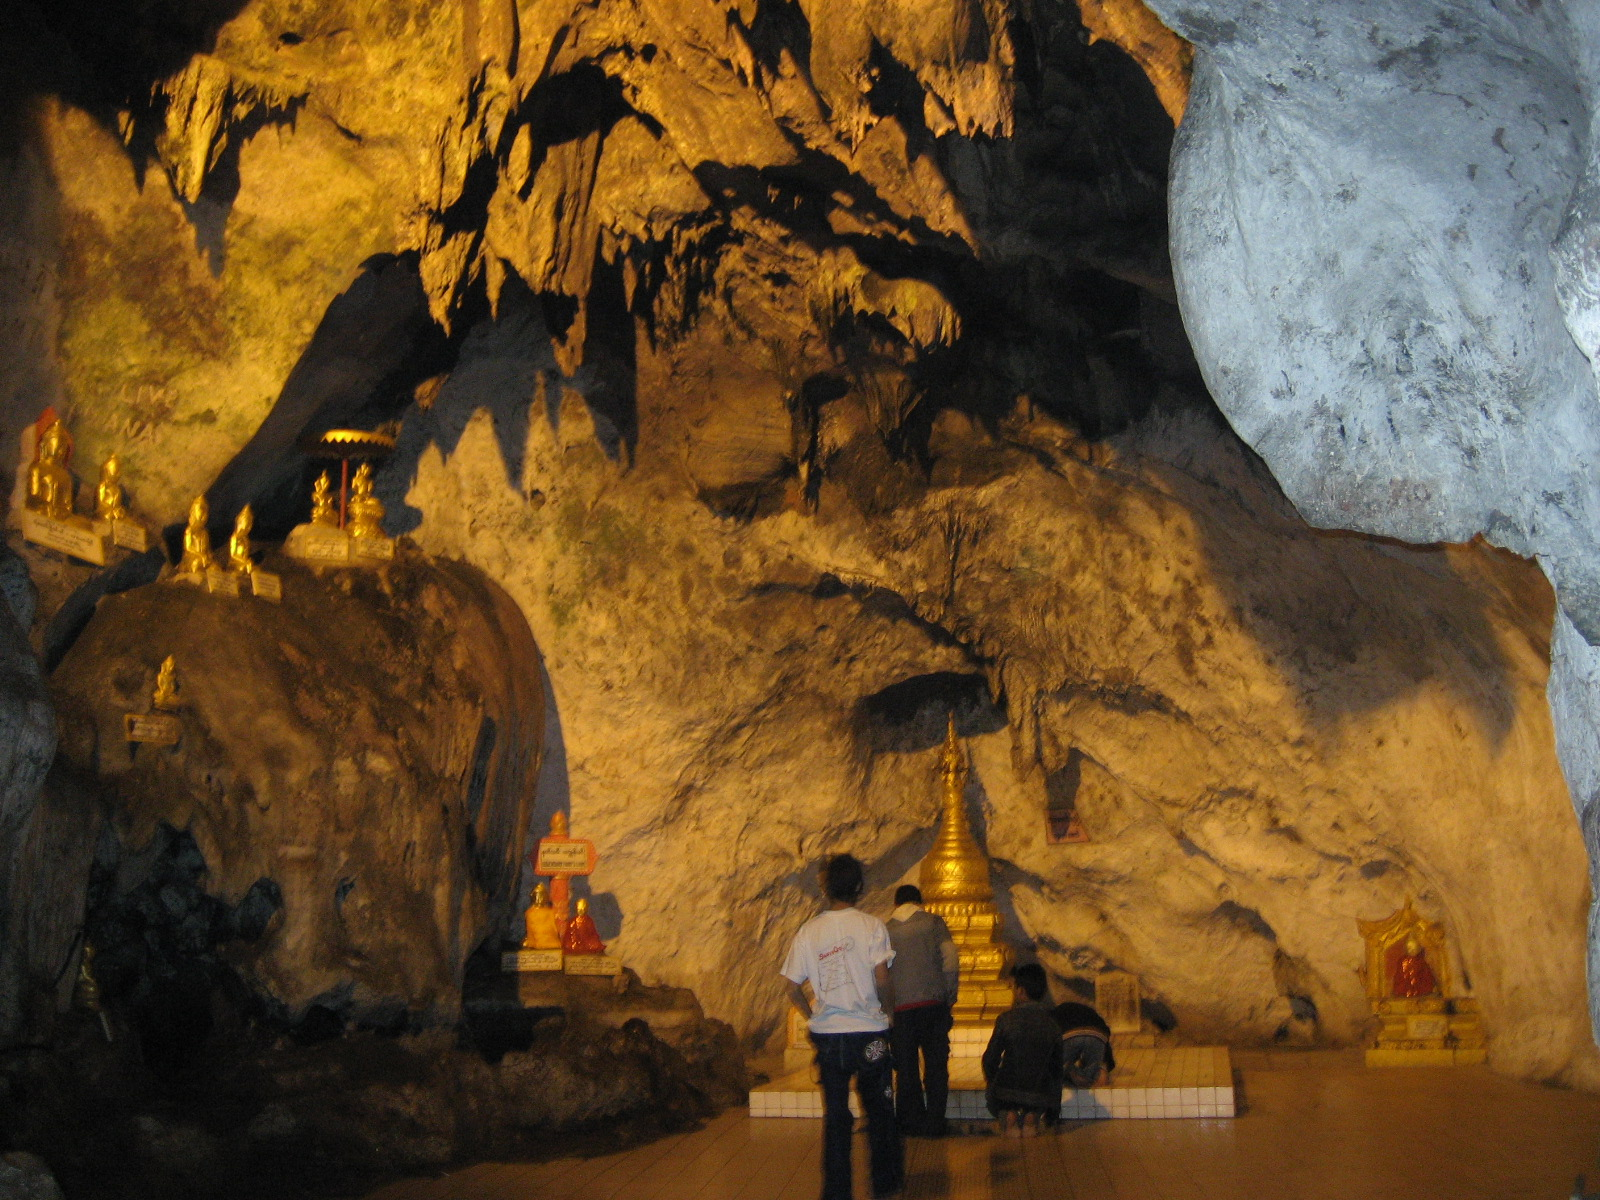 Pindaya Myanmar  city images : Pindaya Caves interior Wikimedia Commons